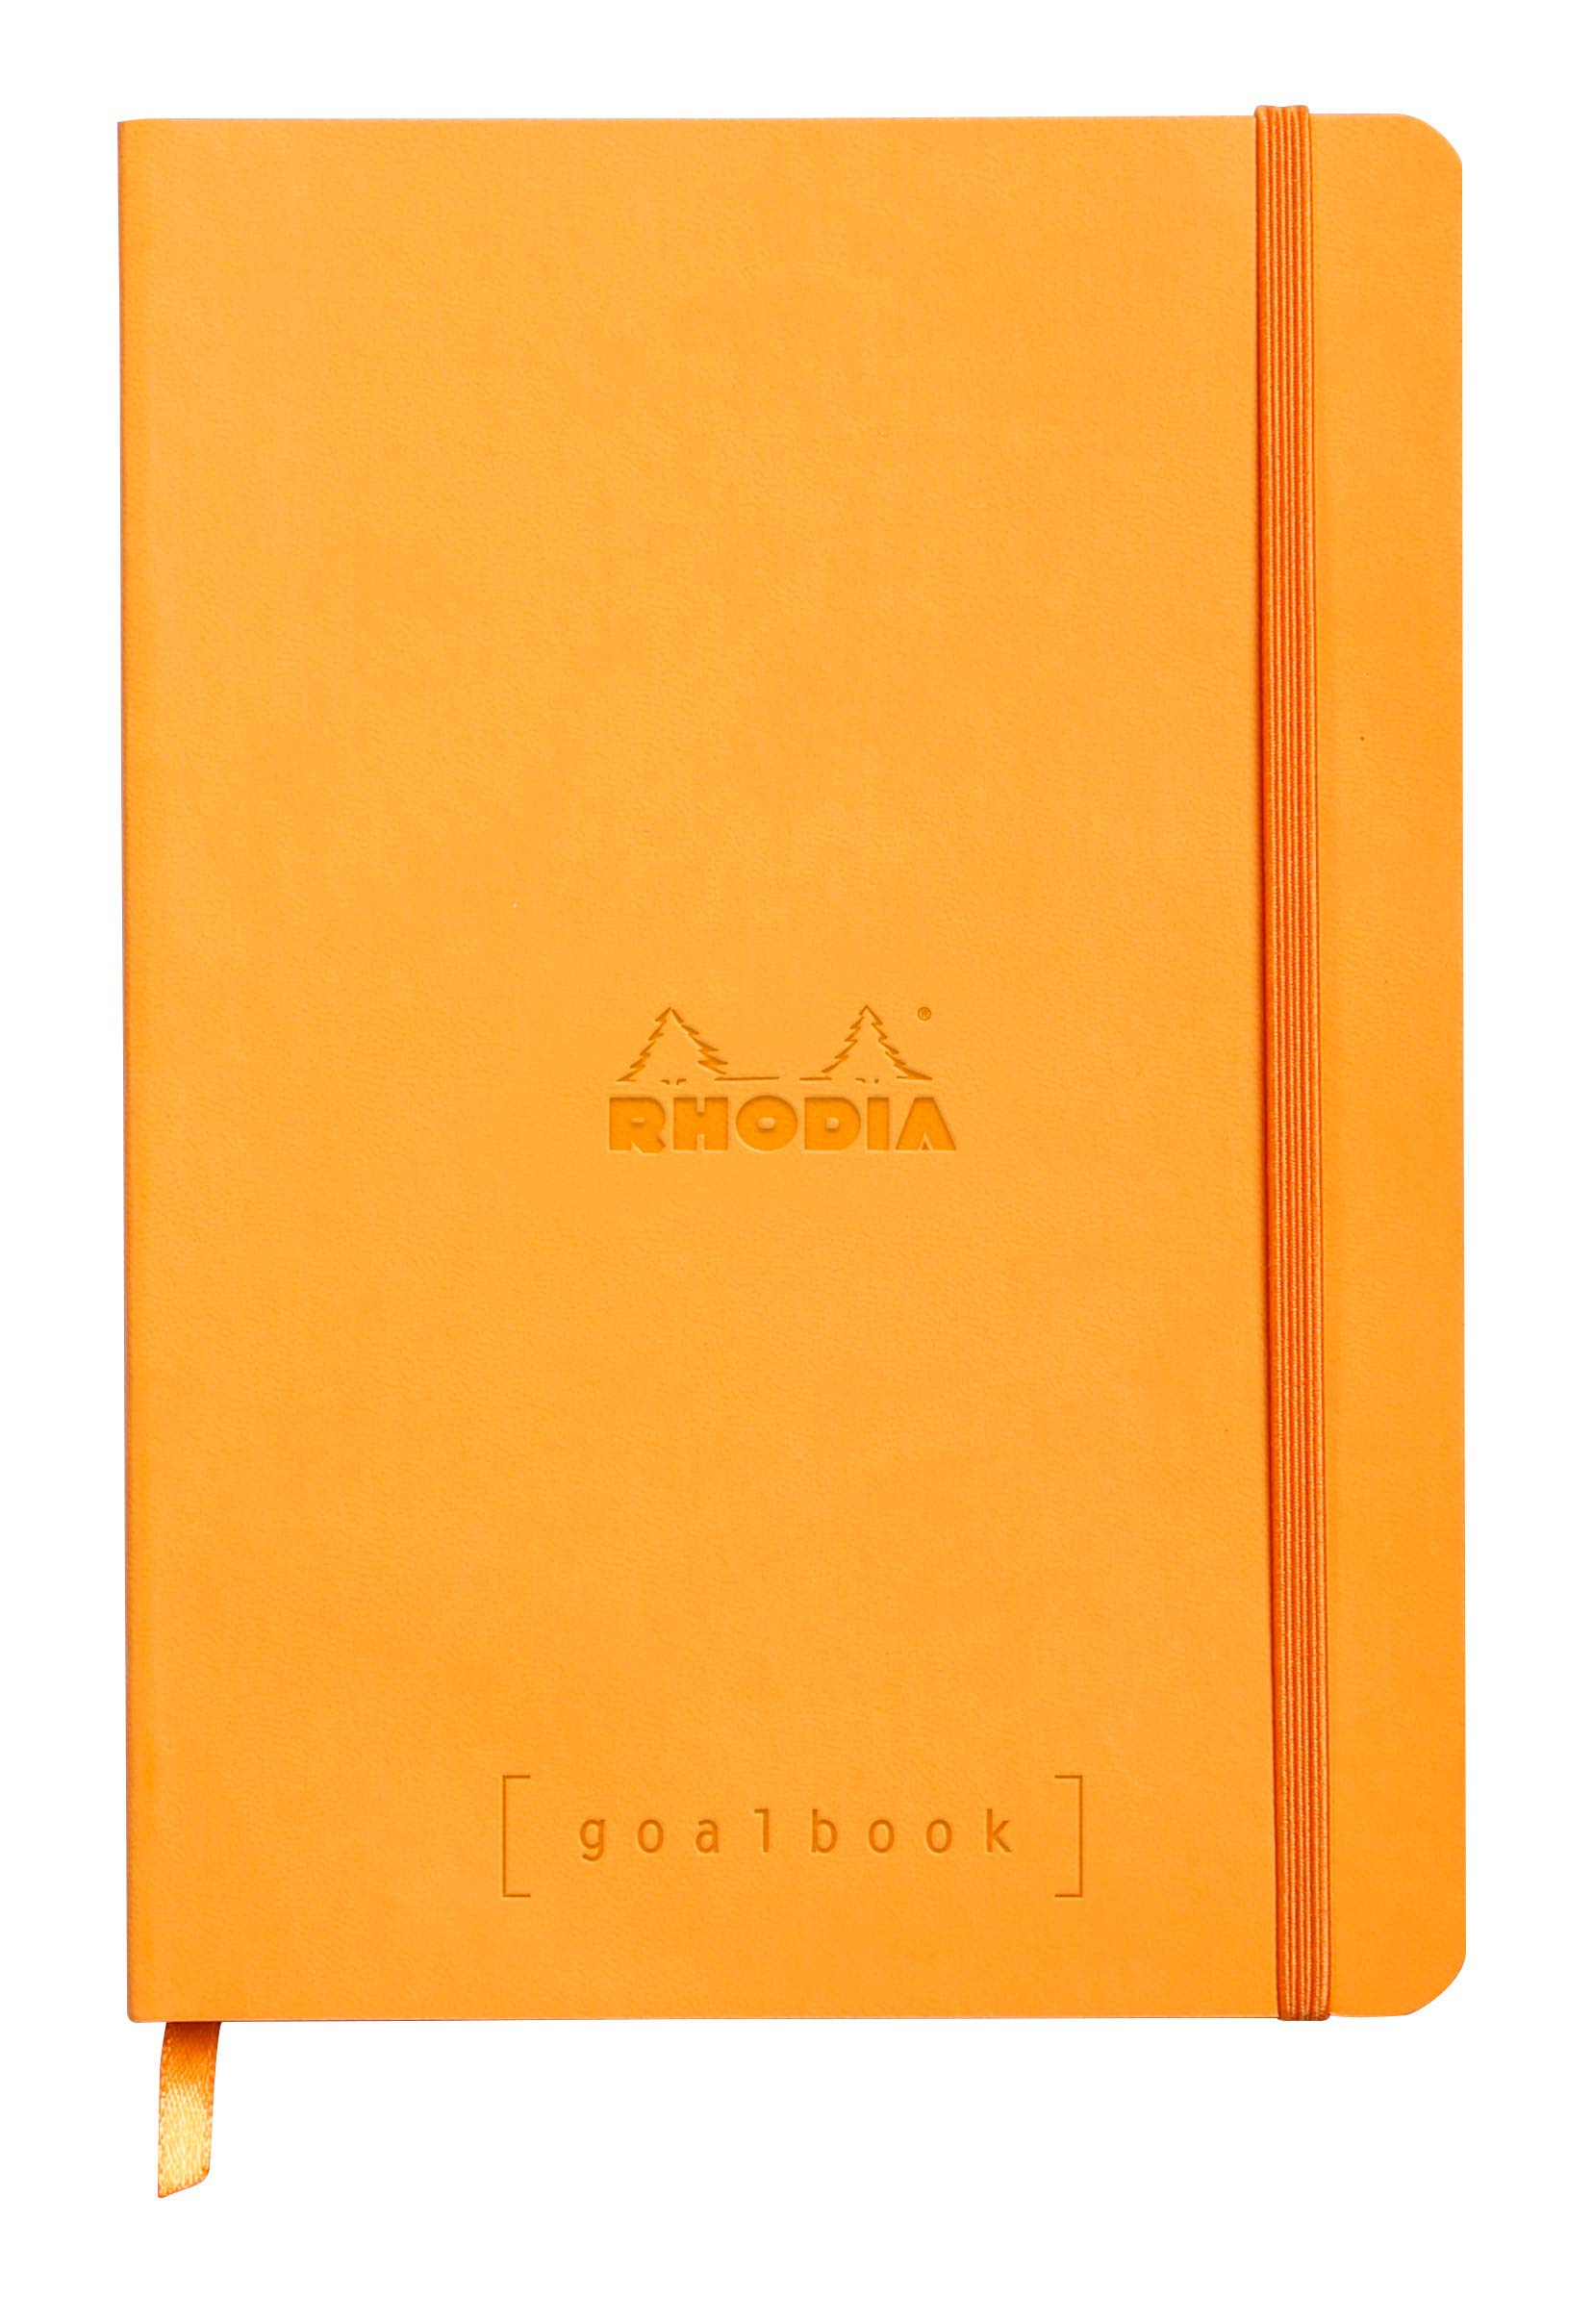 Rhodia Goalbook - Dot Grid 224 Numbered pages - 6 x 8 1/4 - Orange by Rhodia